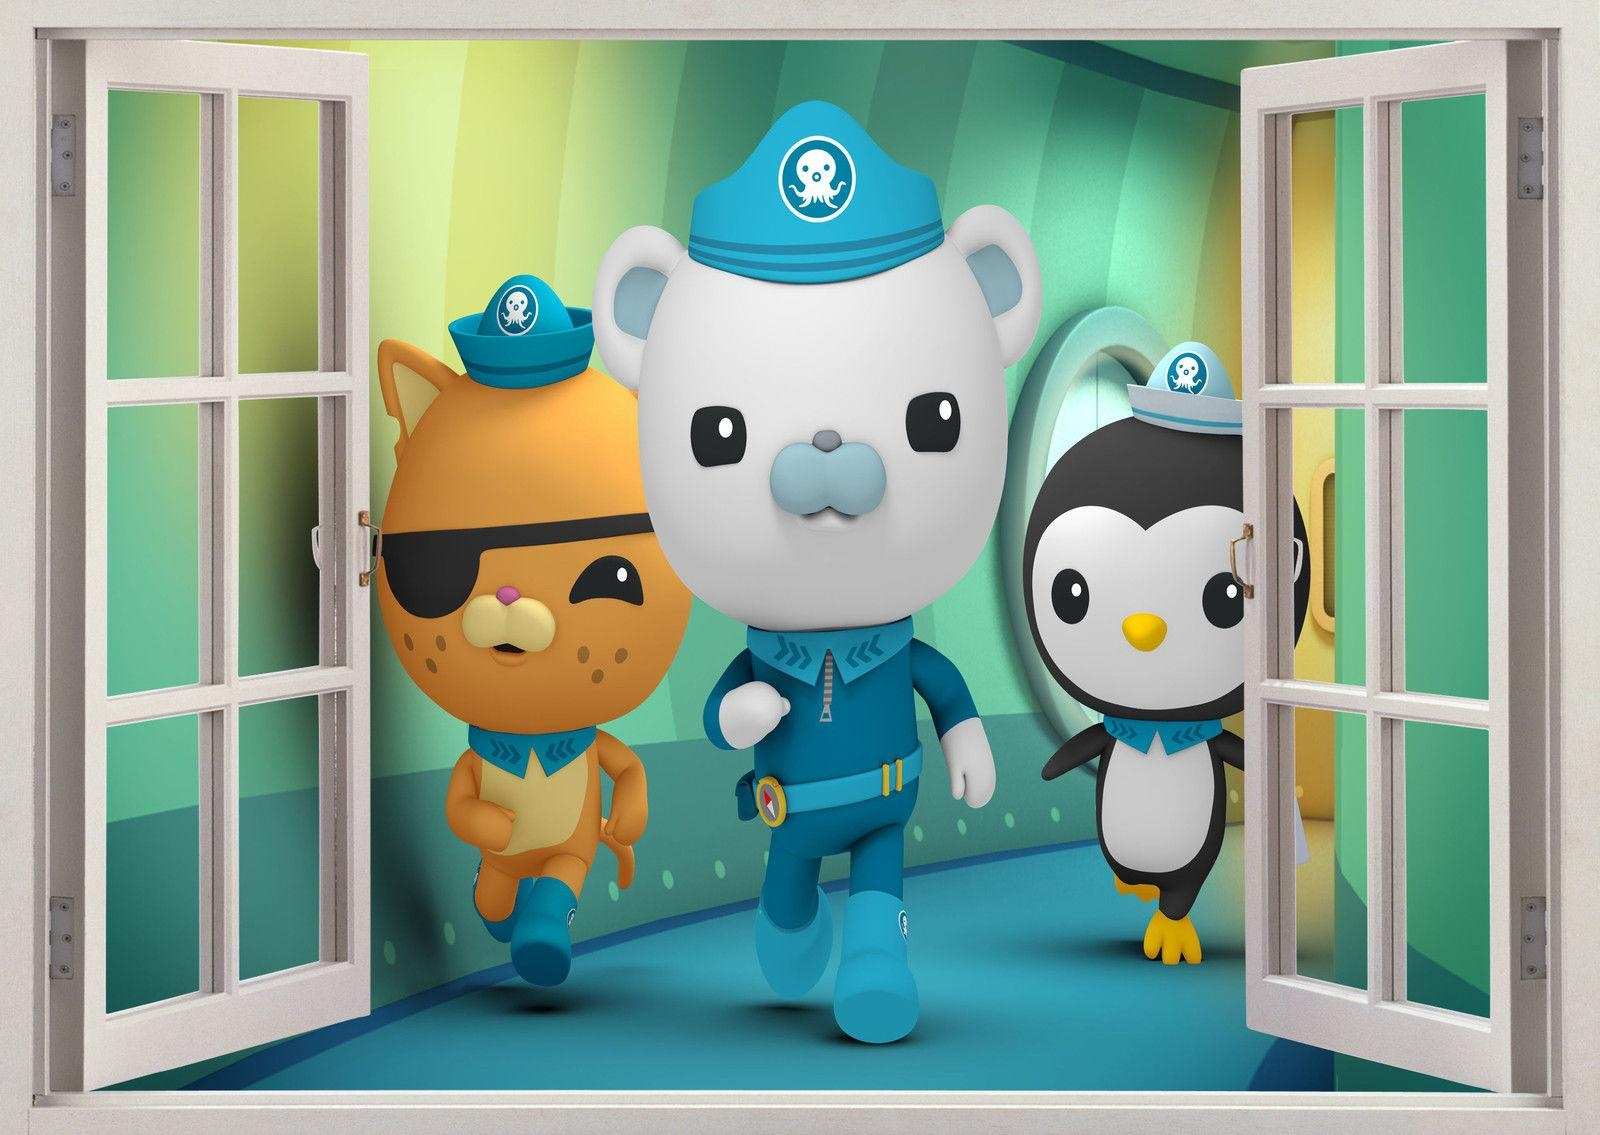 Wall Decals & Stickers , Home Decor , Home, Furniture & Diy In Octonauts Wall Art (View 9 of 17)